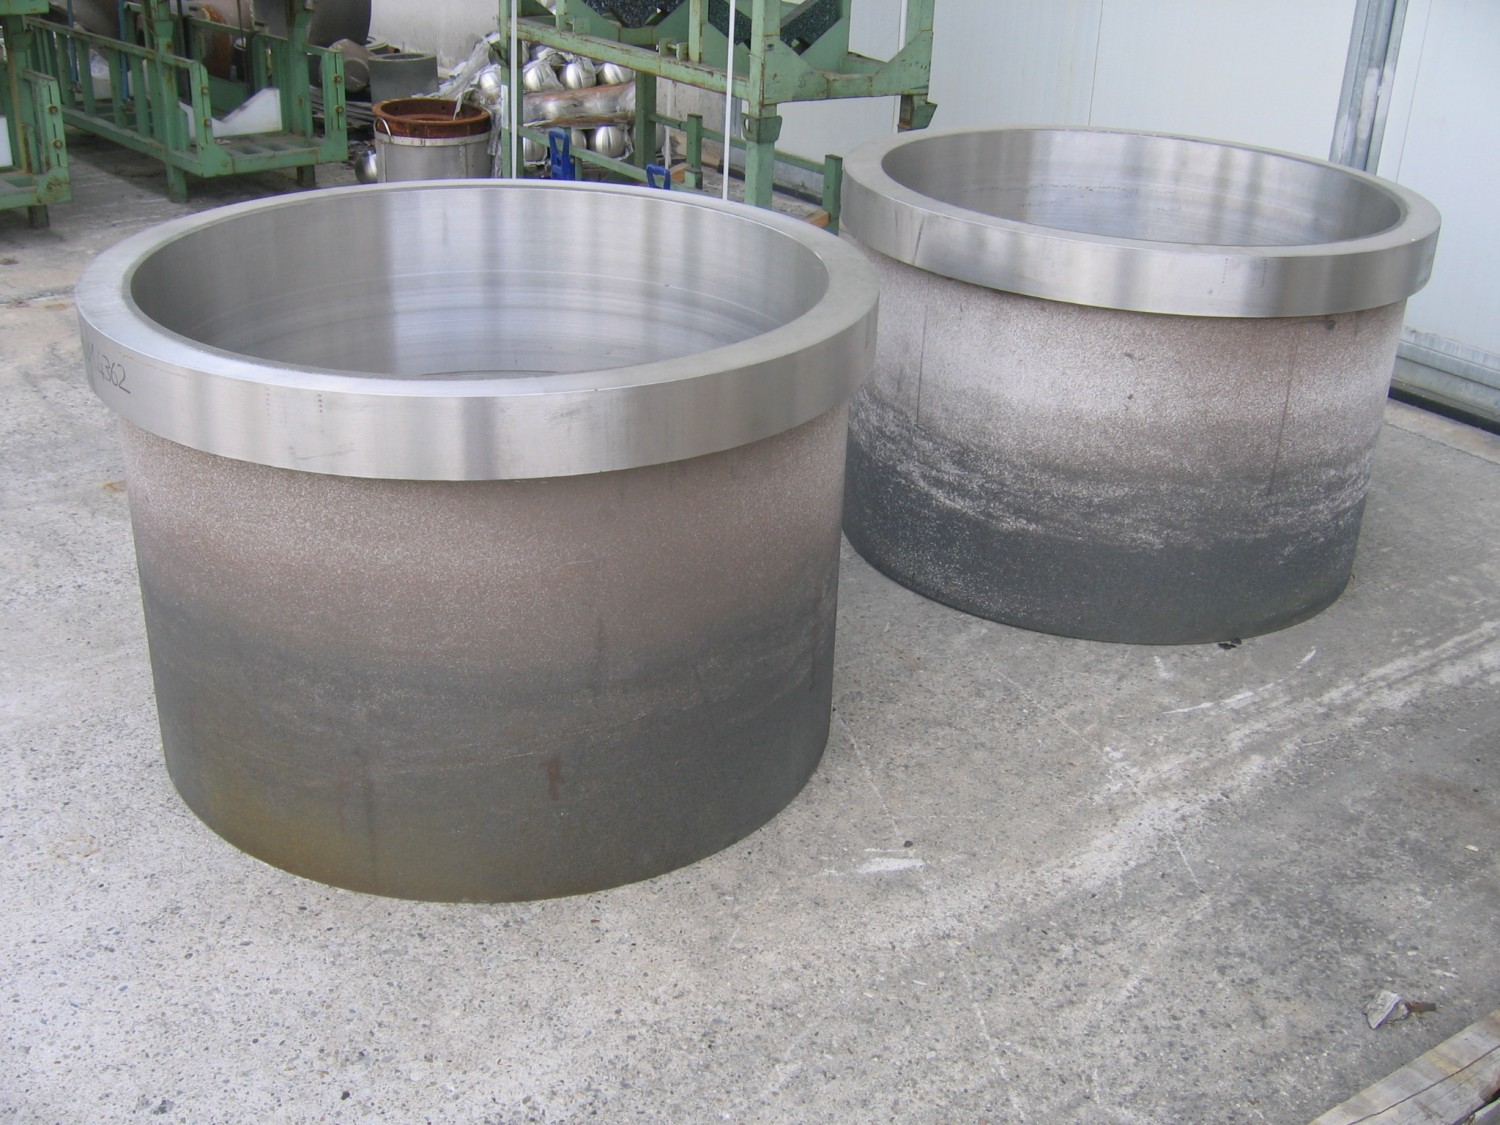 SAF 2304 unmachined rings for separators, to be weld assembled